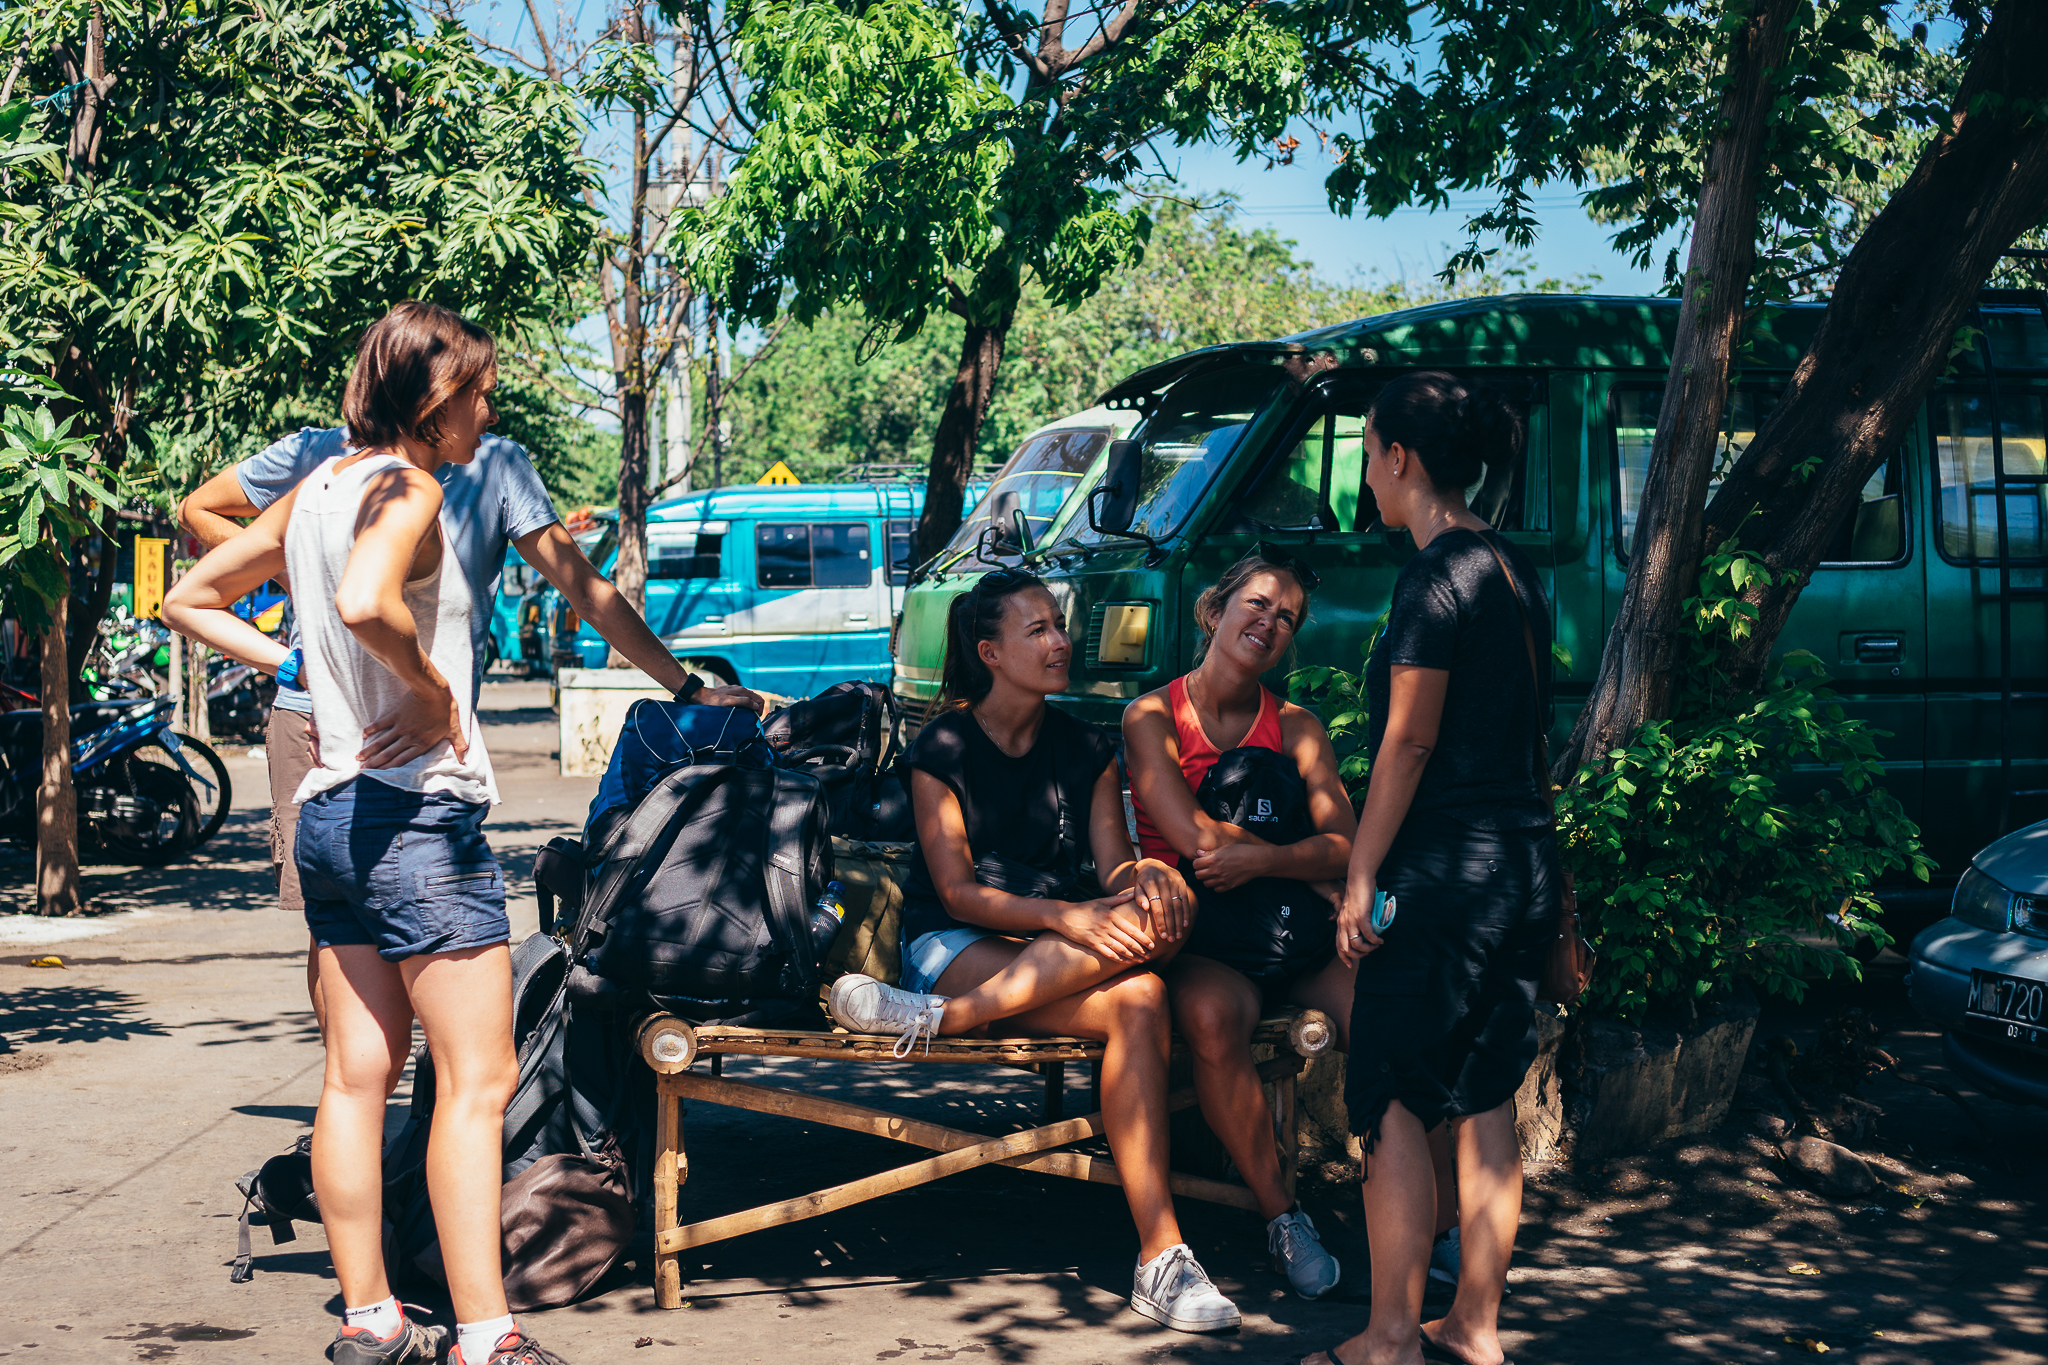 The waiting game. Fortunately, we didn't have to wait long for the mini-bus to get full, but others had already been waiting for hours.